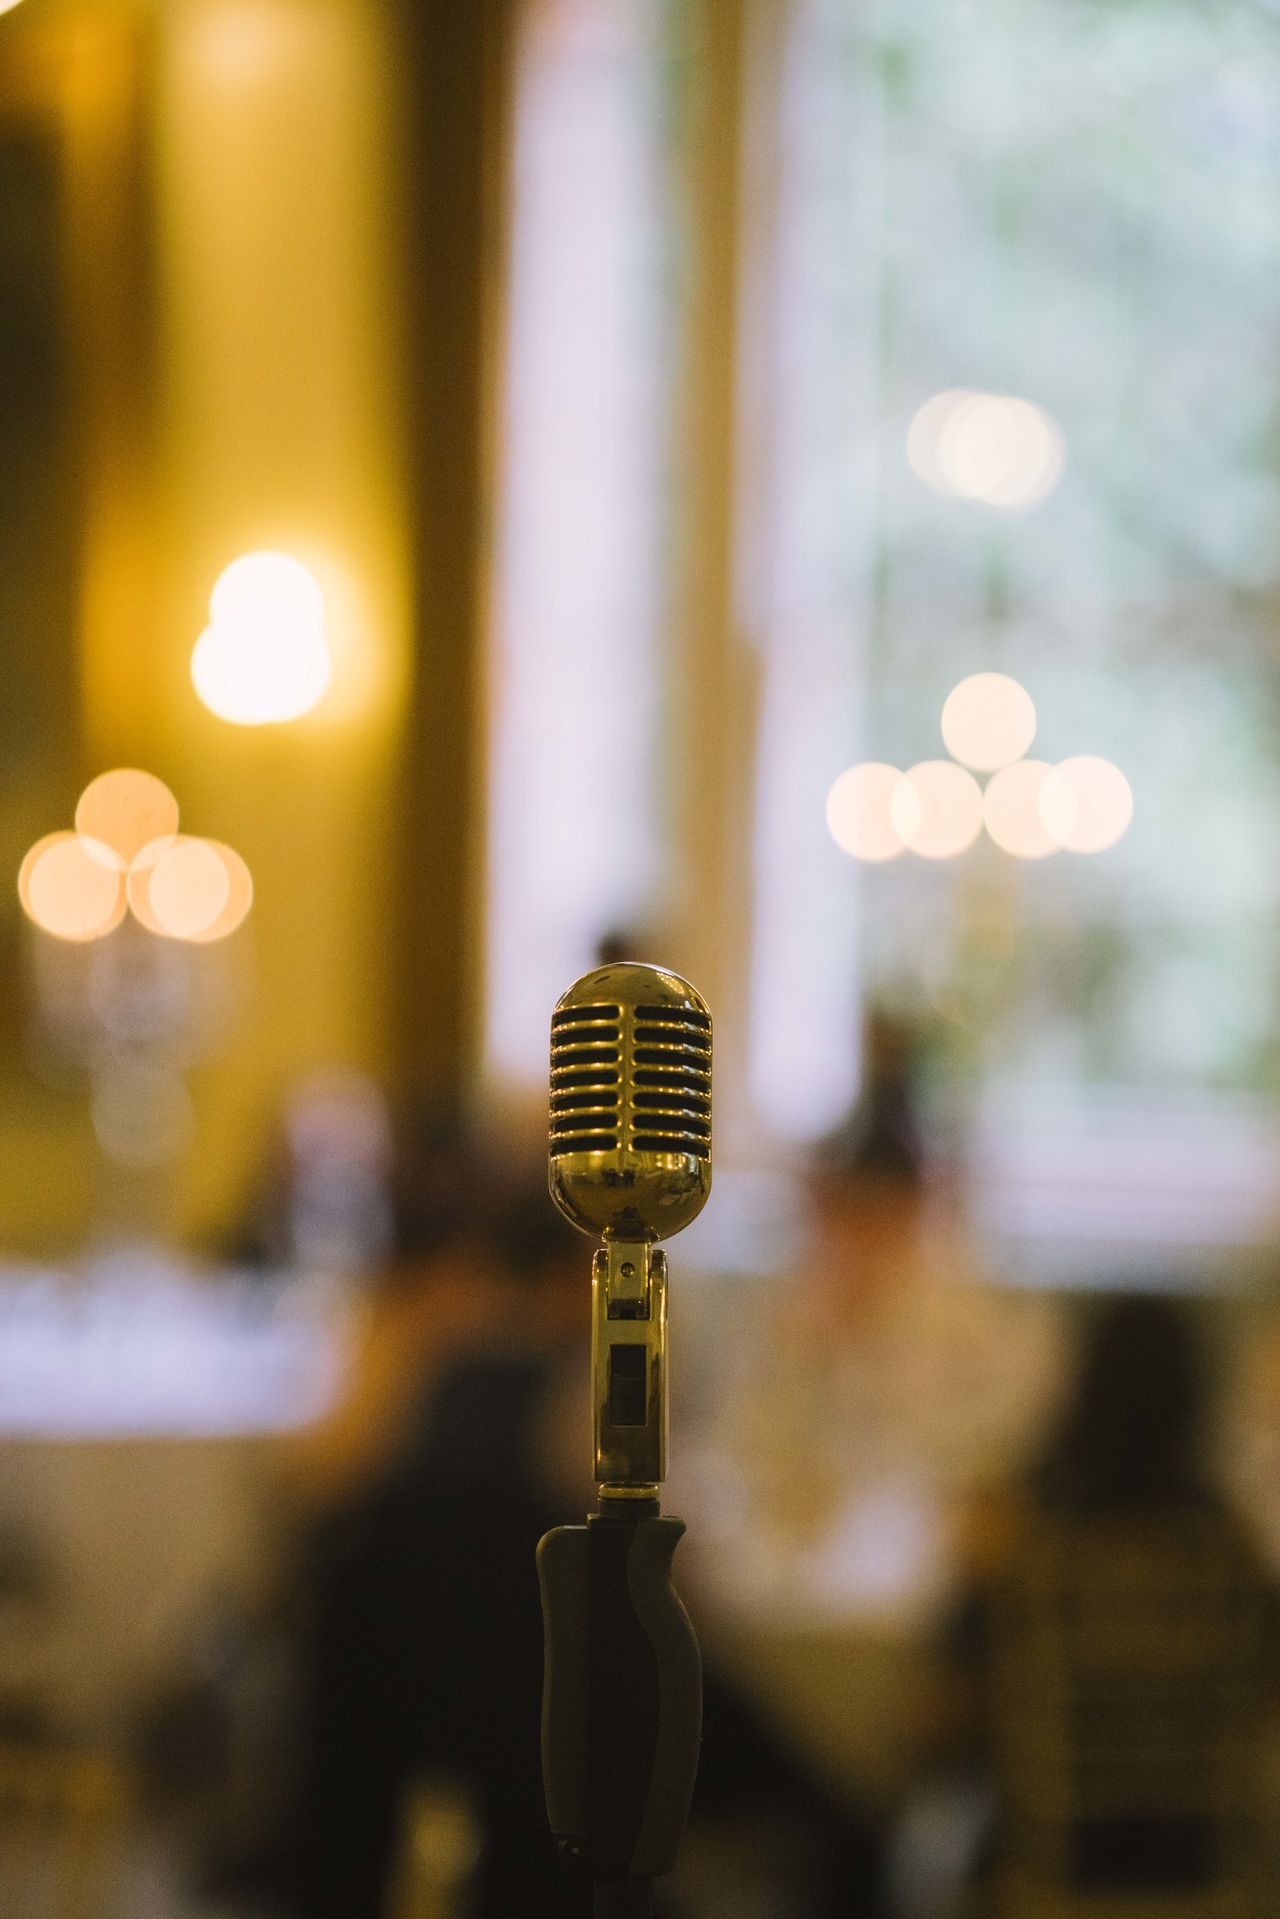 Play me some music. Bokeh Photography Mic Microphone Microphone Stand Music Musical Instrument Noise Performance Performing Arts Real Life Rhythm Sing Songs Sound Sound Of Life Still Life Volume